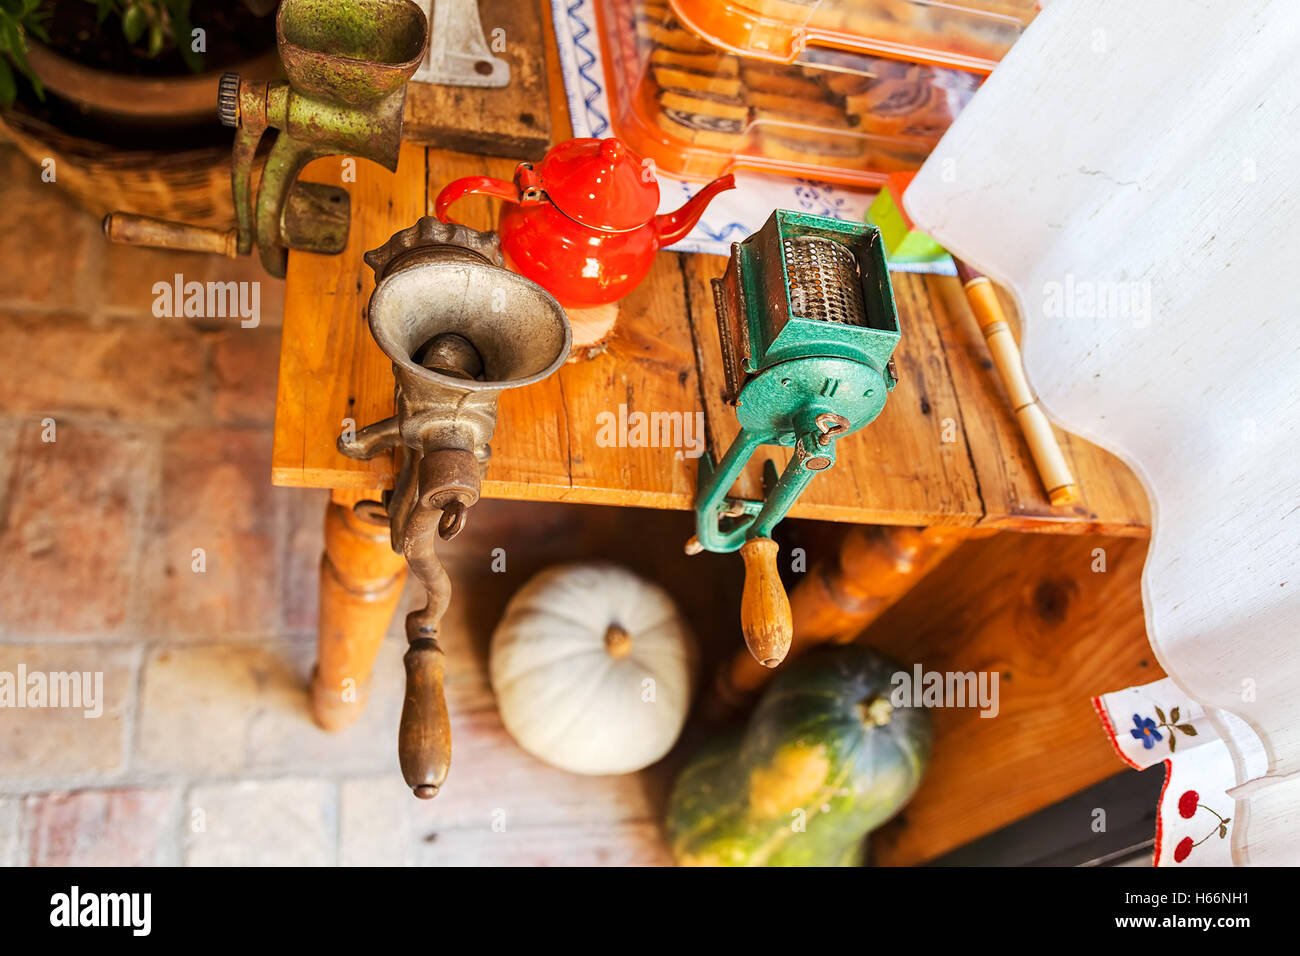 manual mills for grind and preparing food for winter, note shallow depth of field - Stock Image